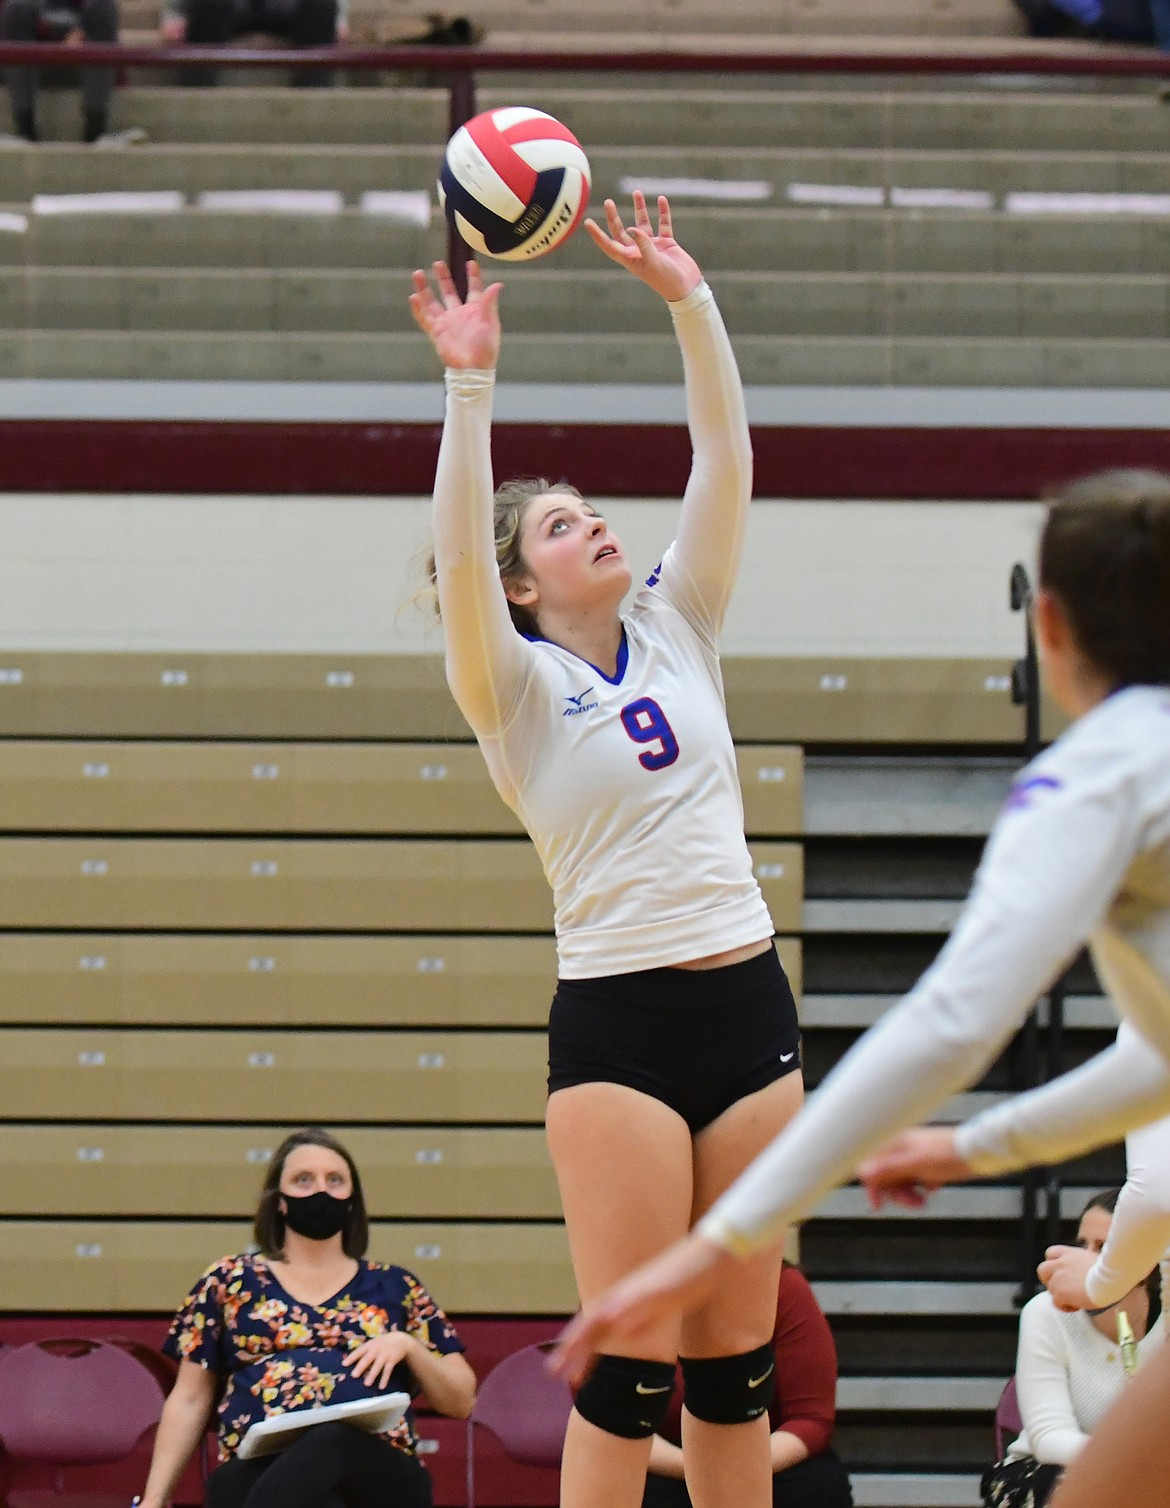 Hannah Schweikert sets her teammates up for the kill during Friday's match against Corvallis. (Teresa Byrd/Hungry Horse News)